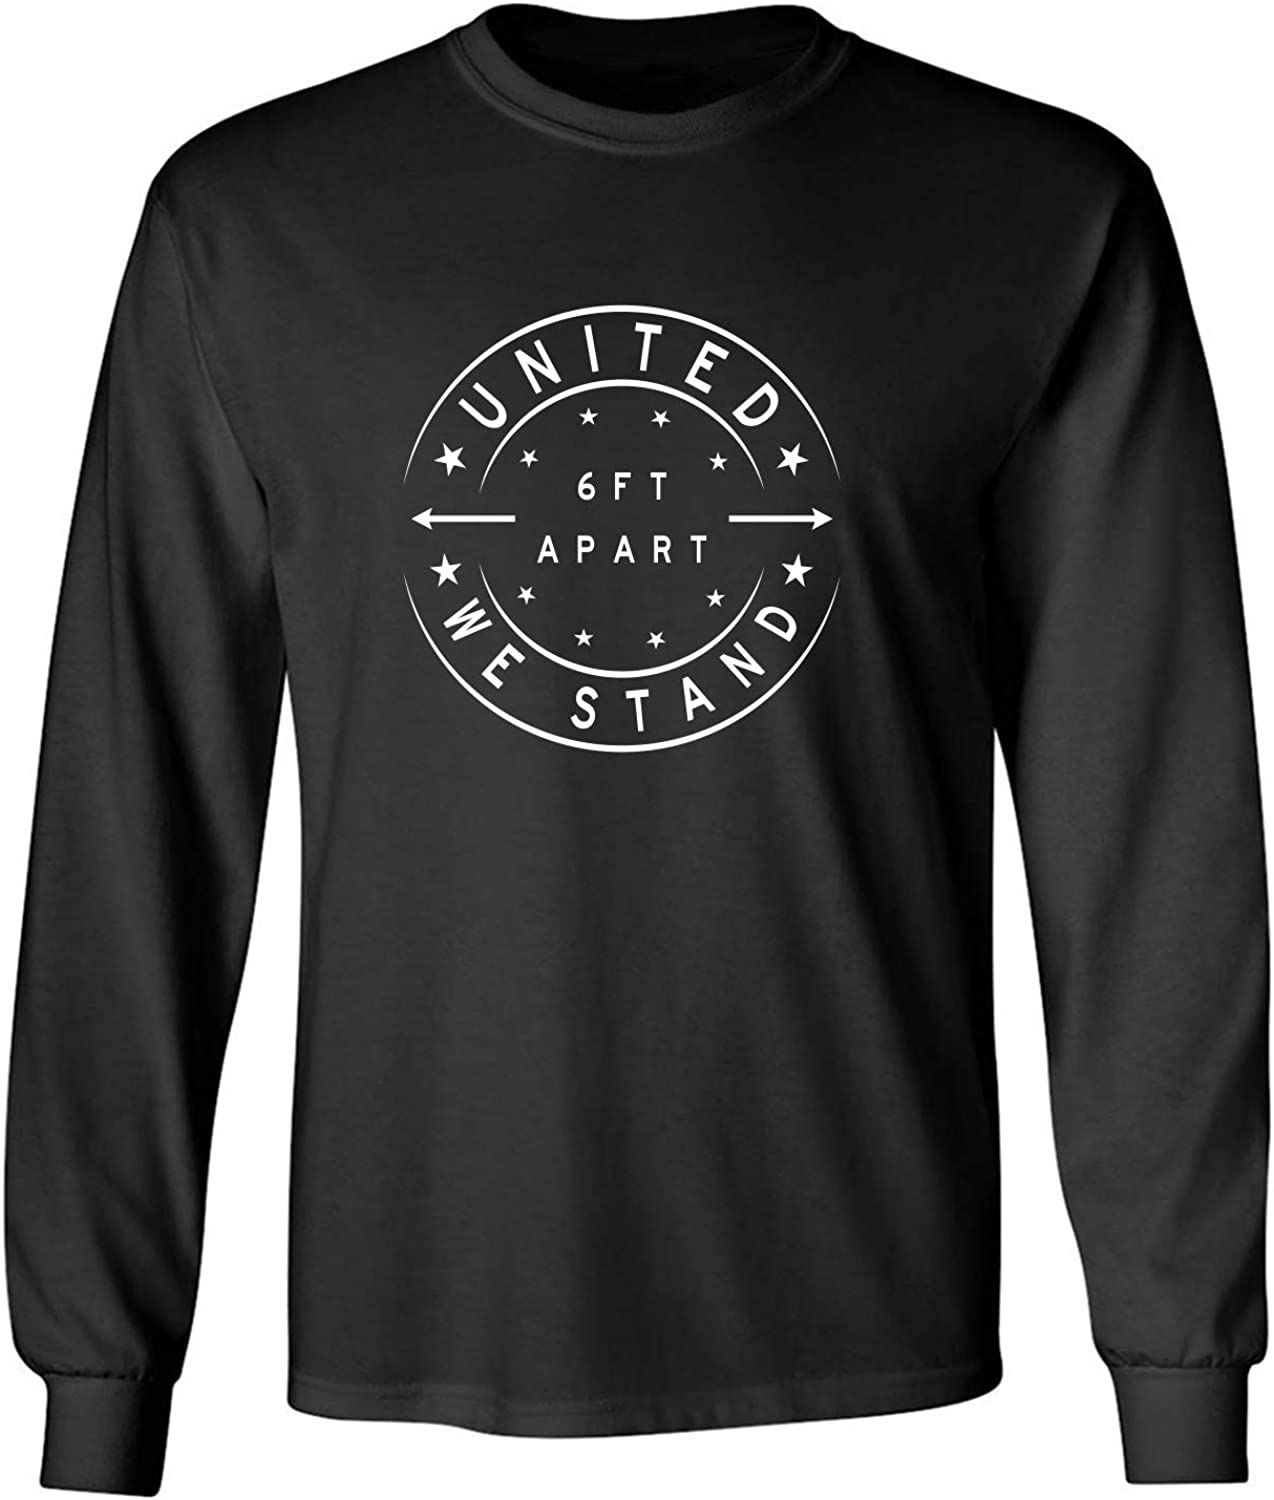 United We Stand - 6 ft Apart Adult Long Sleeve T-Shirt